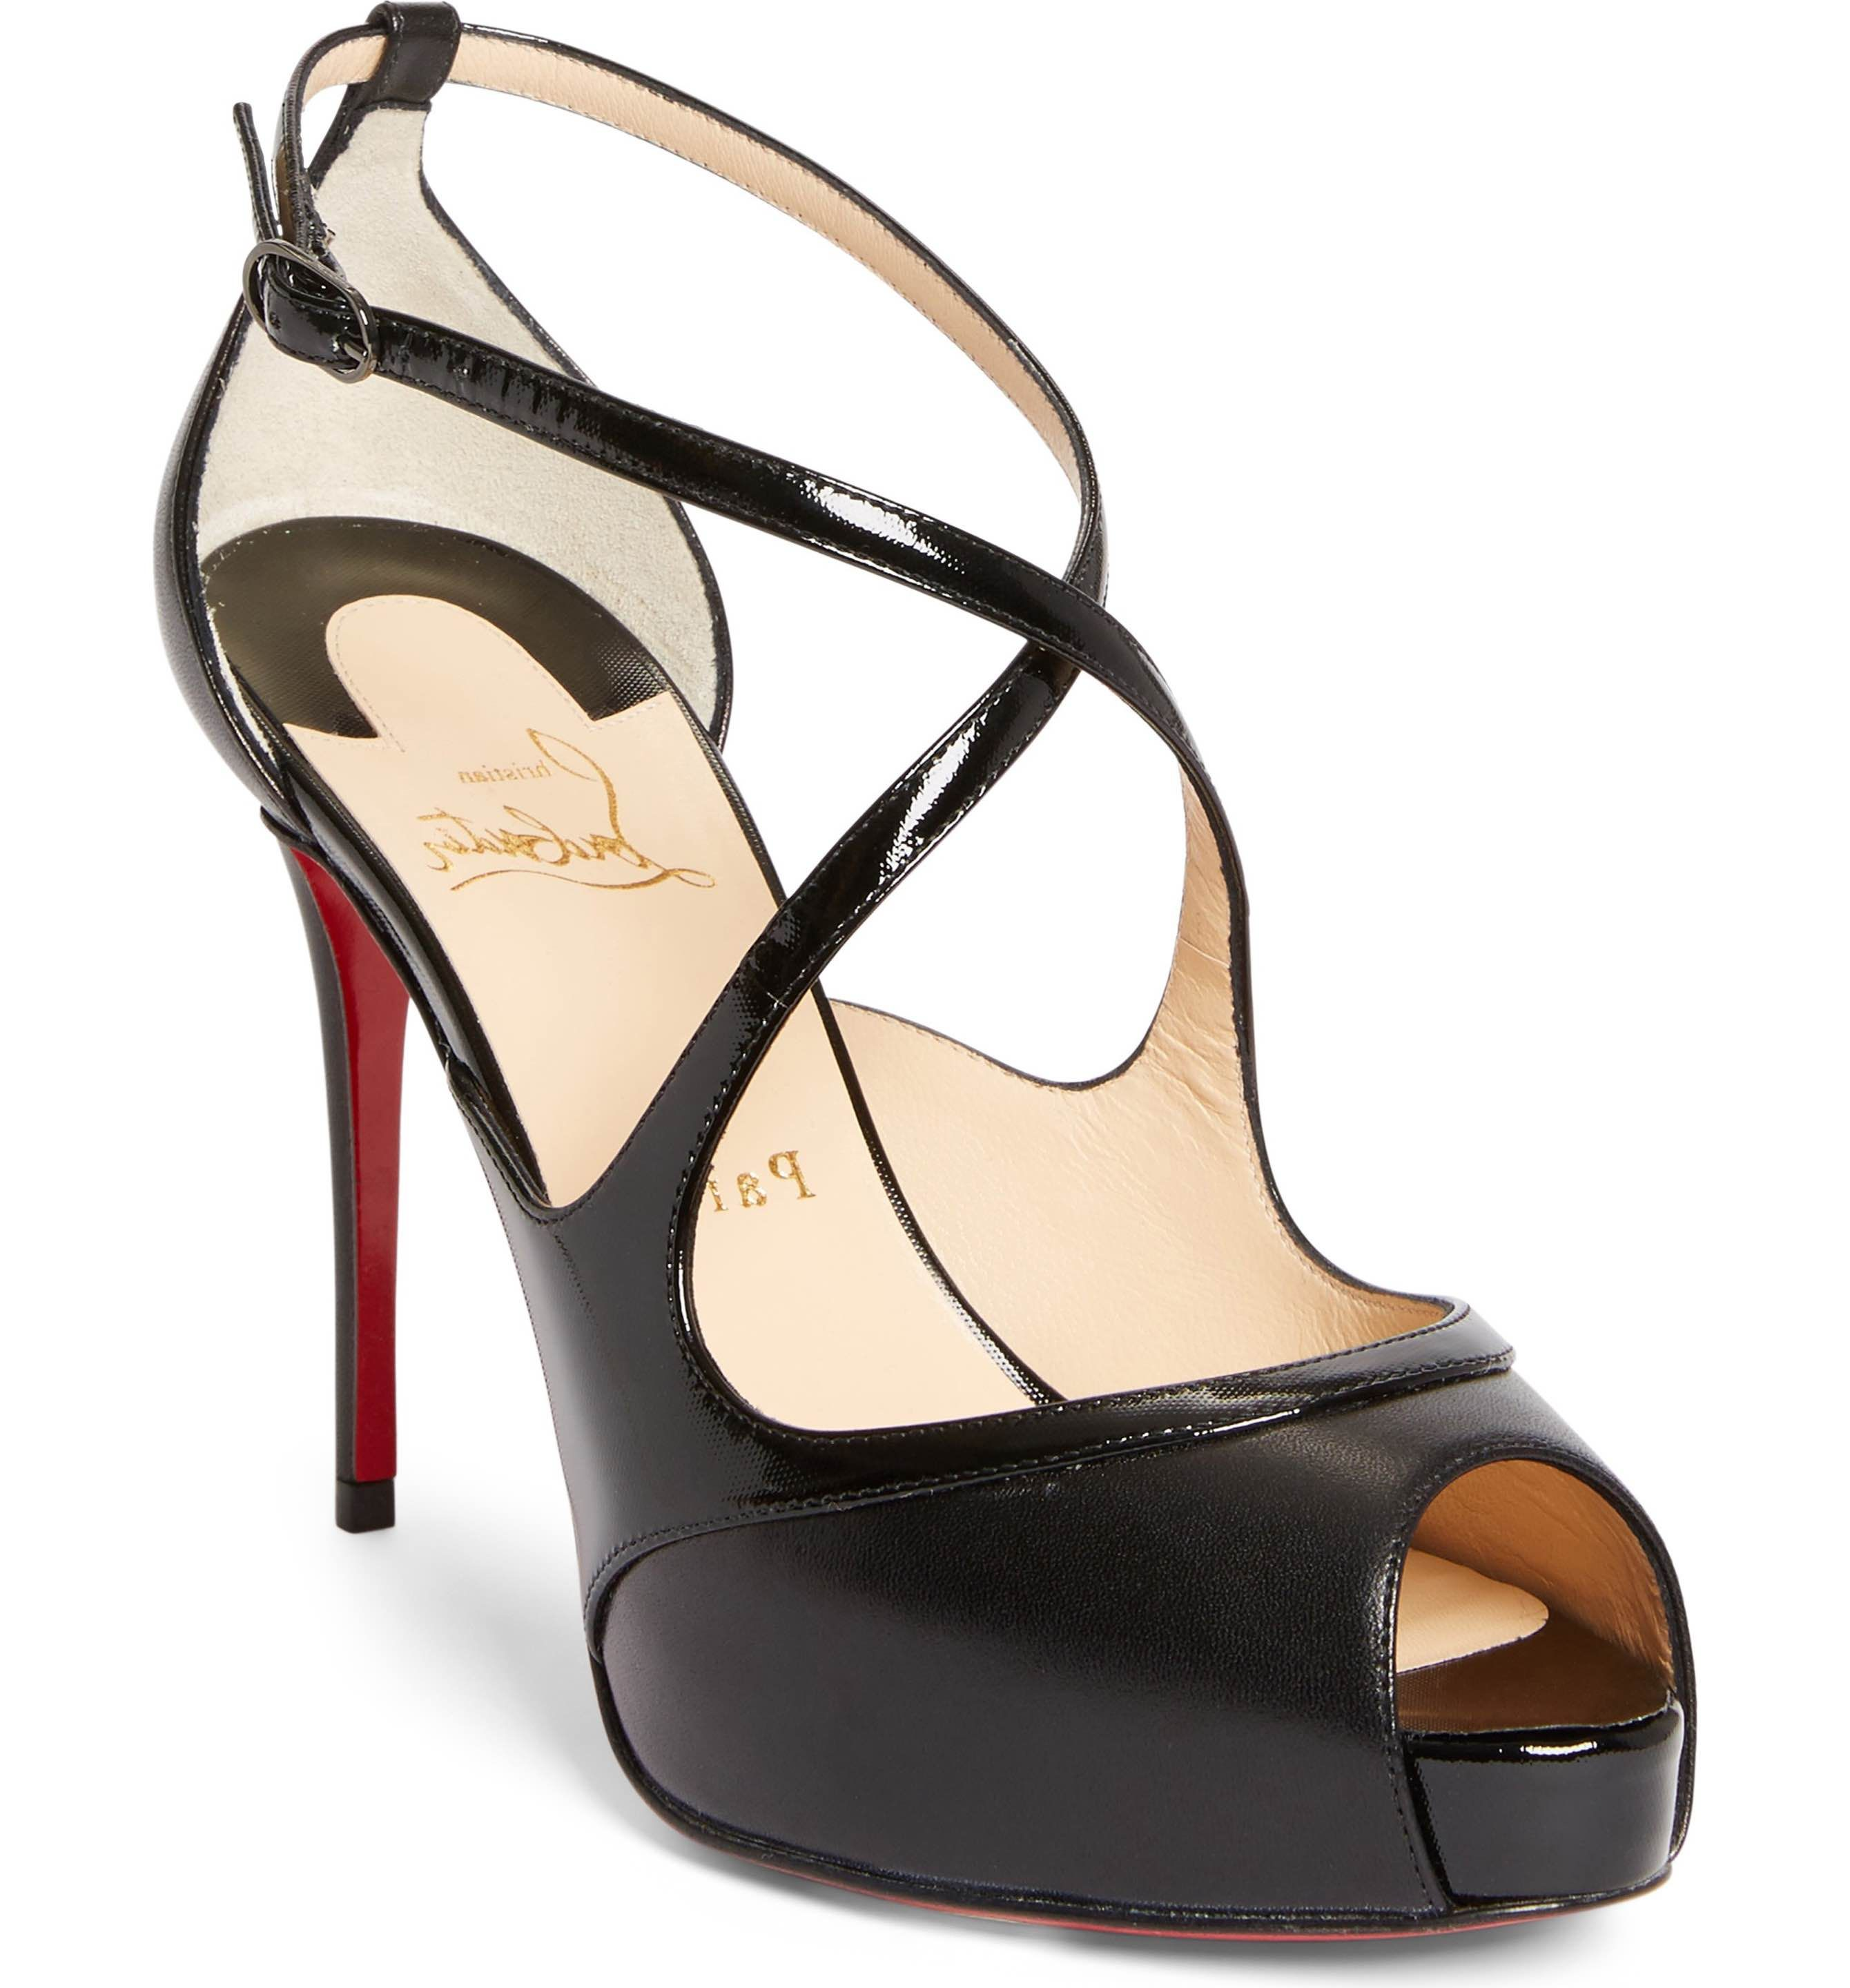 new product f4421 bbe17 Christian Louboutin Mira Bella Sandal | shoes | Christian ...